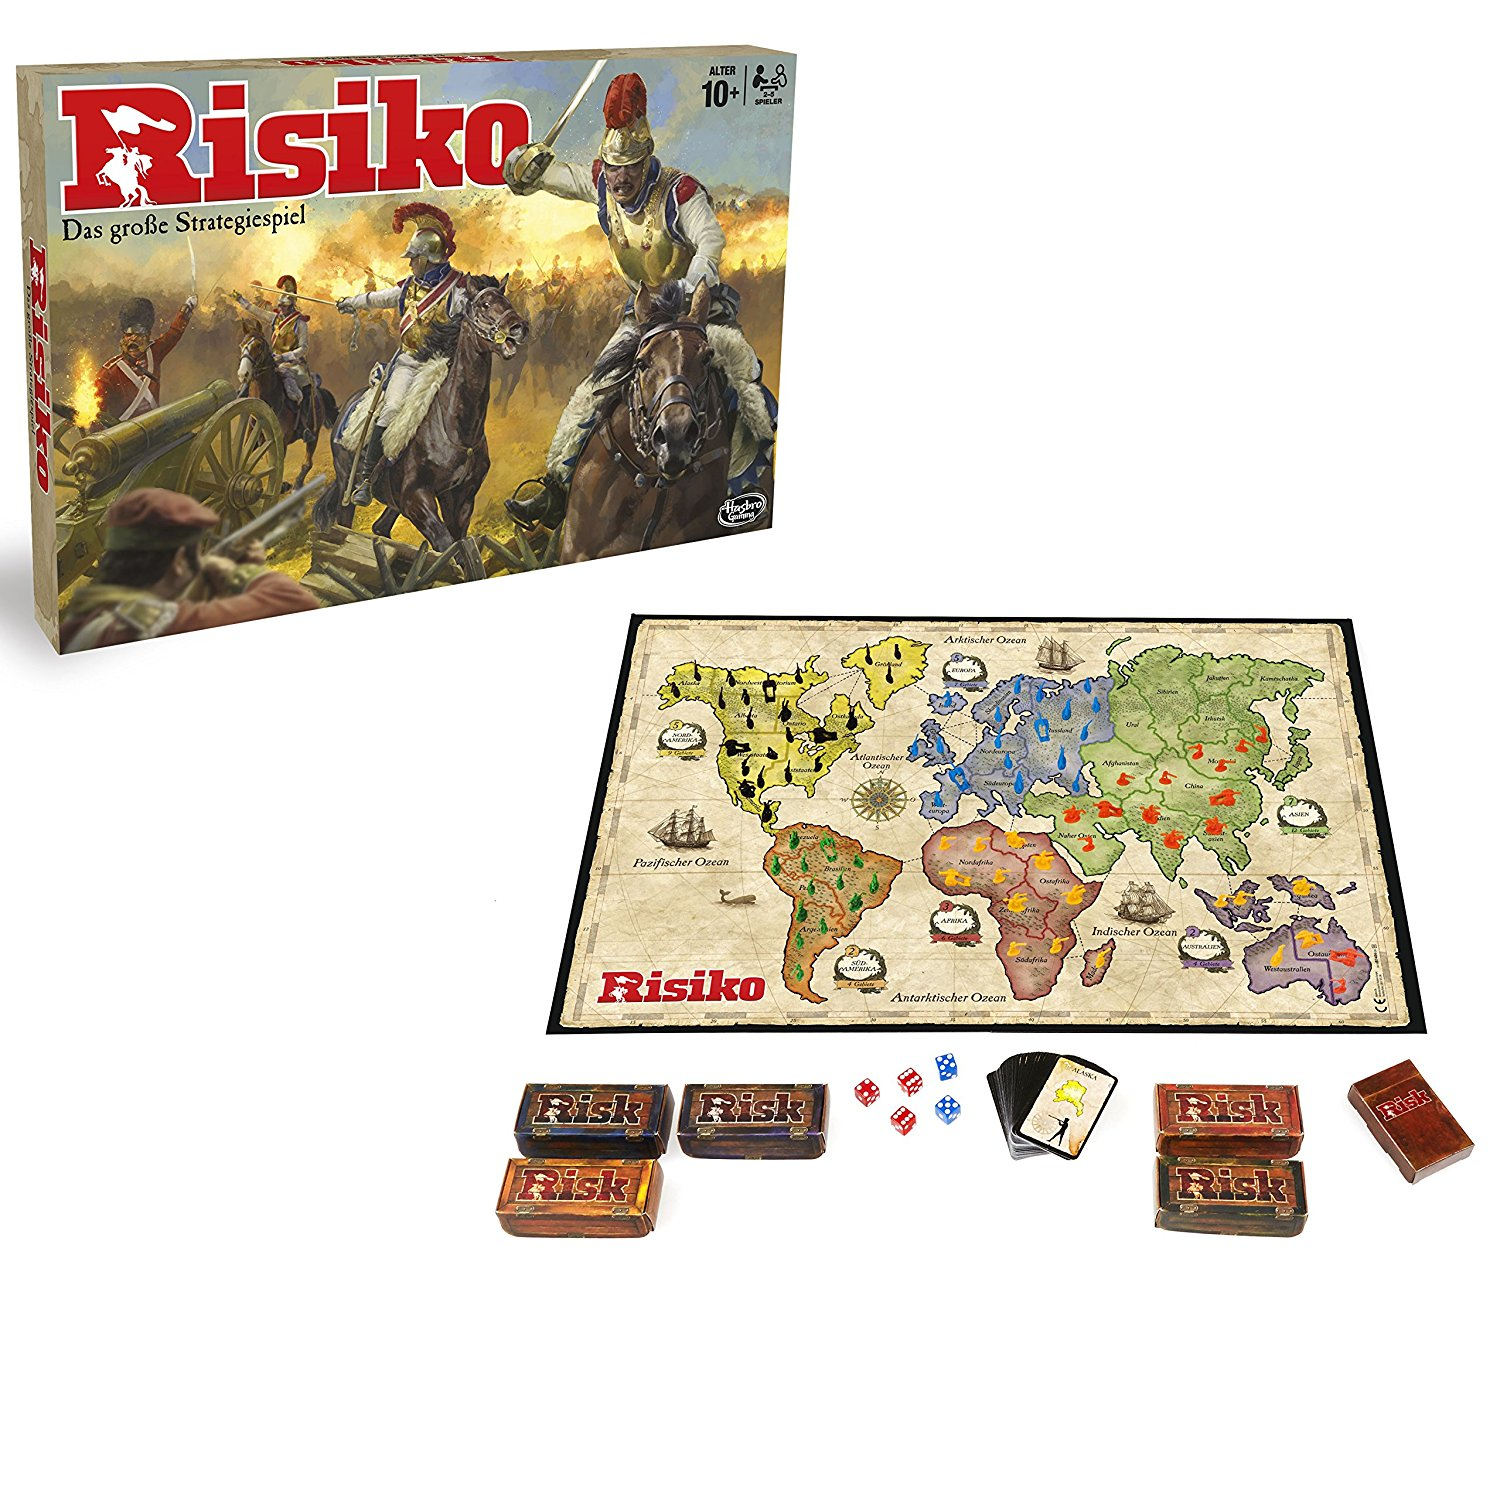 Hasbro Risiko amazon